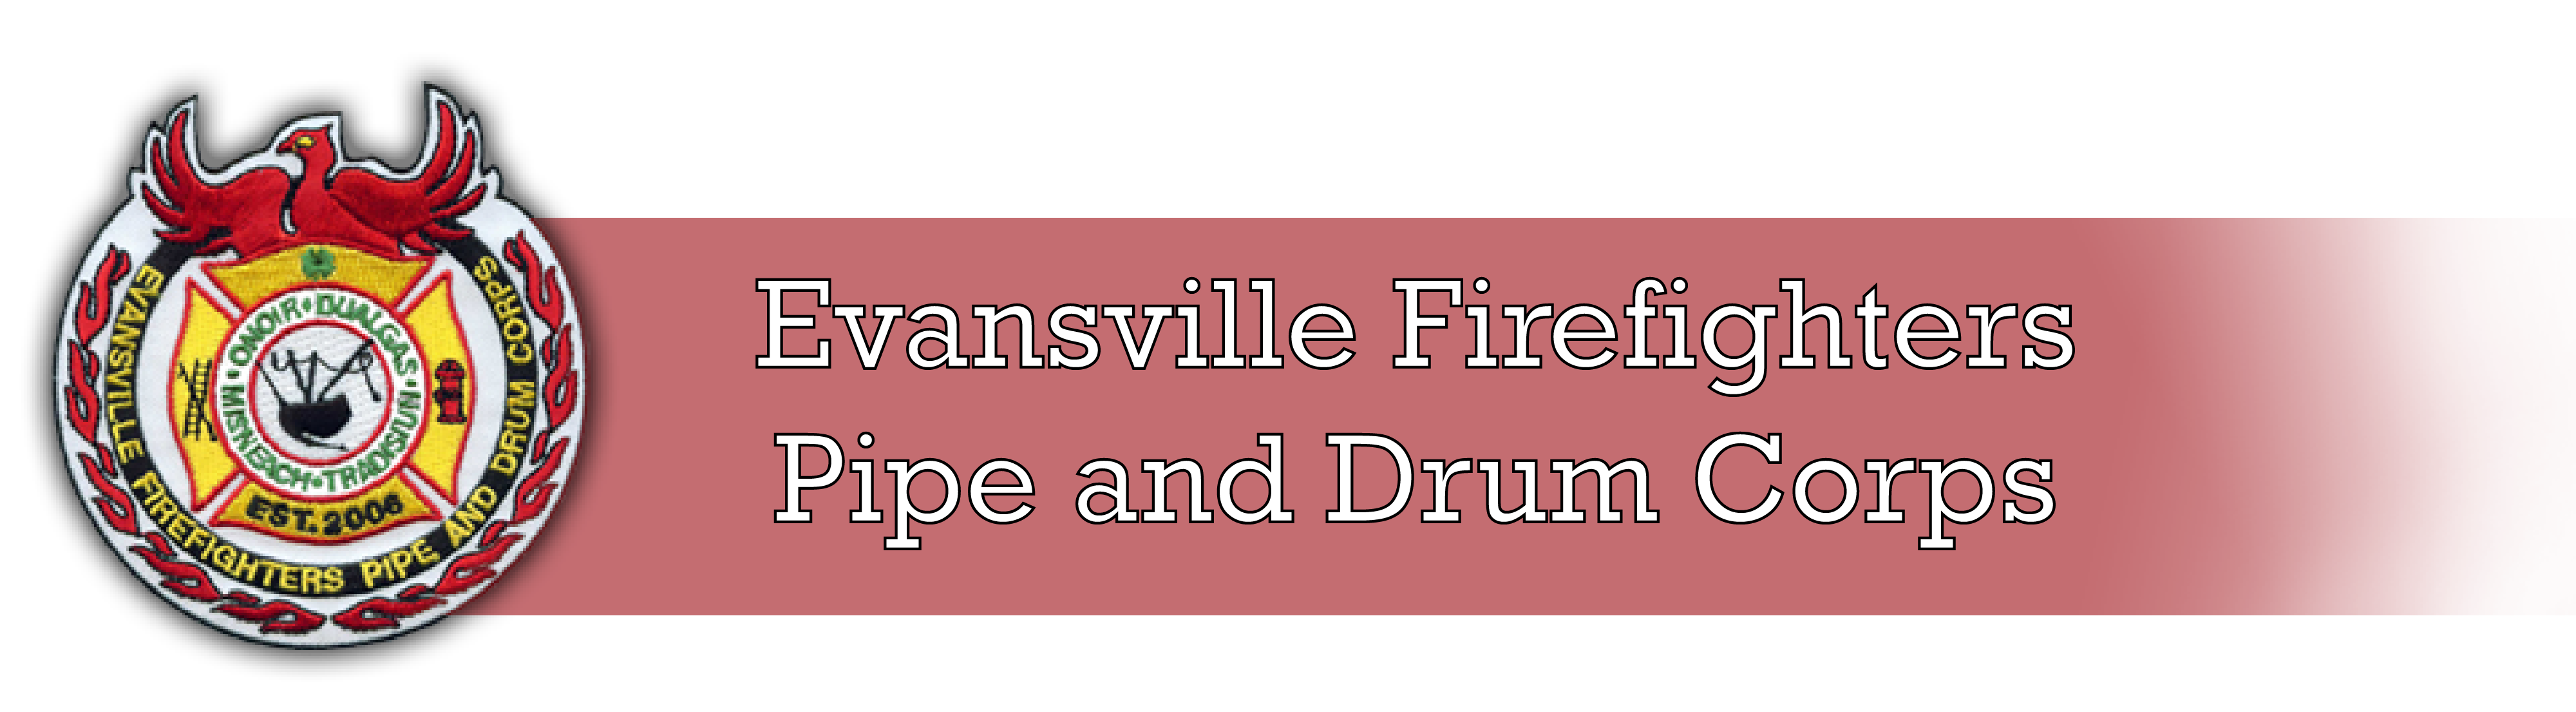 Evansville Firefighters Pipe And Drum Corps